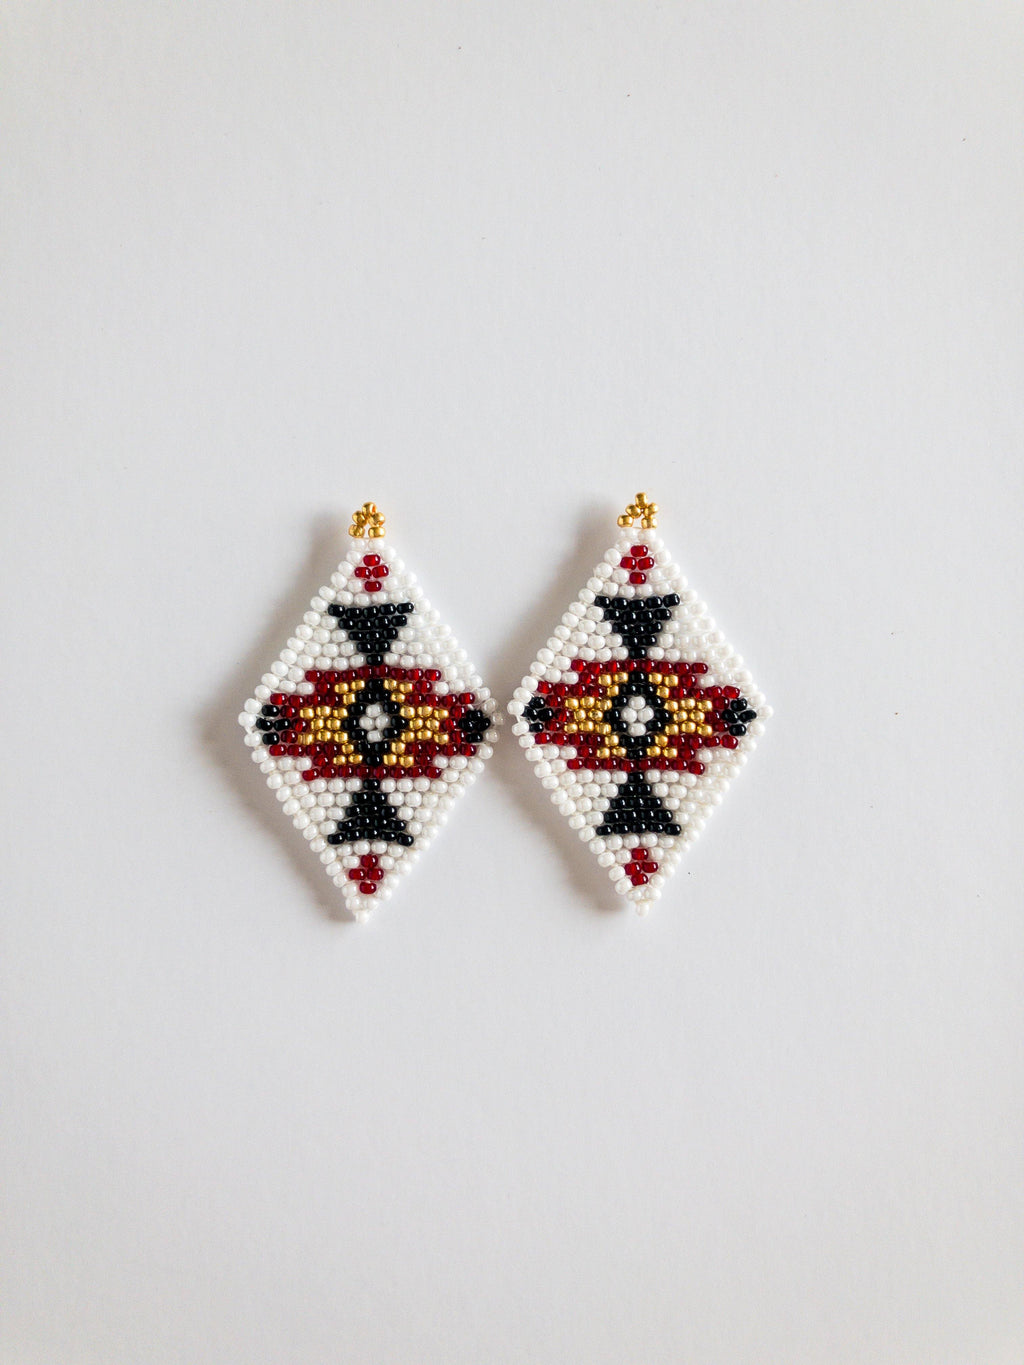 Seed bead earrings with white, black, red and gold seed beads diamond shape